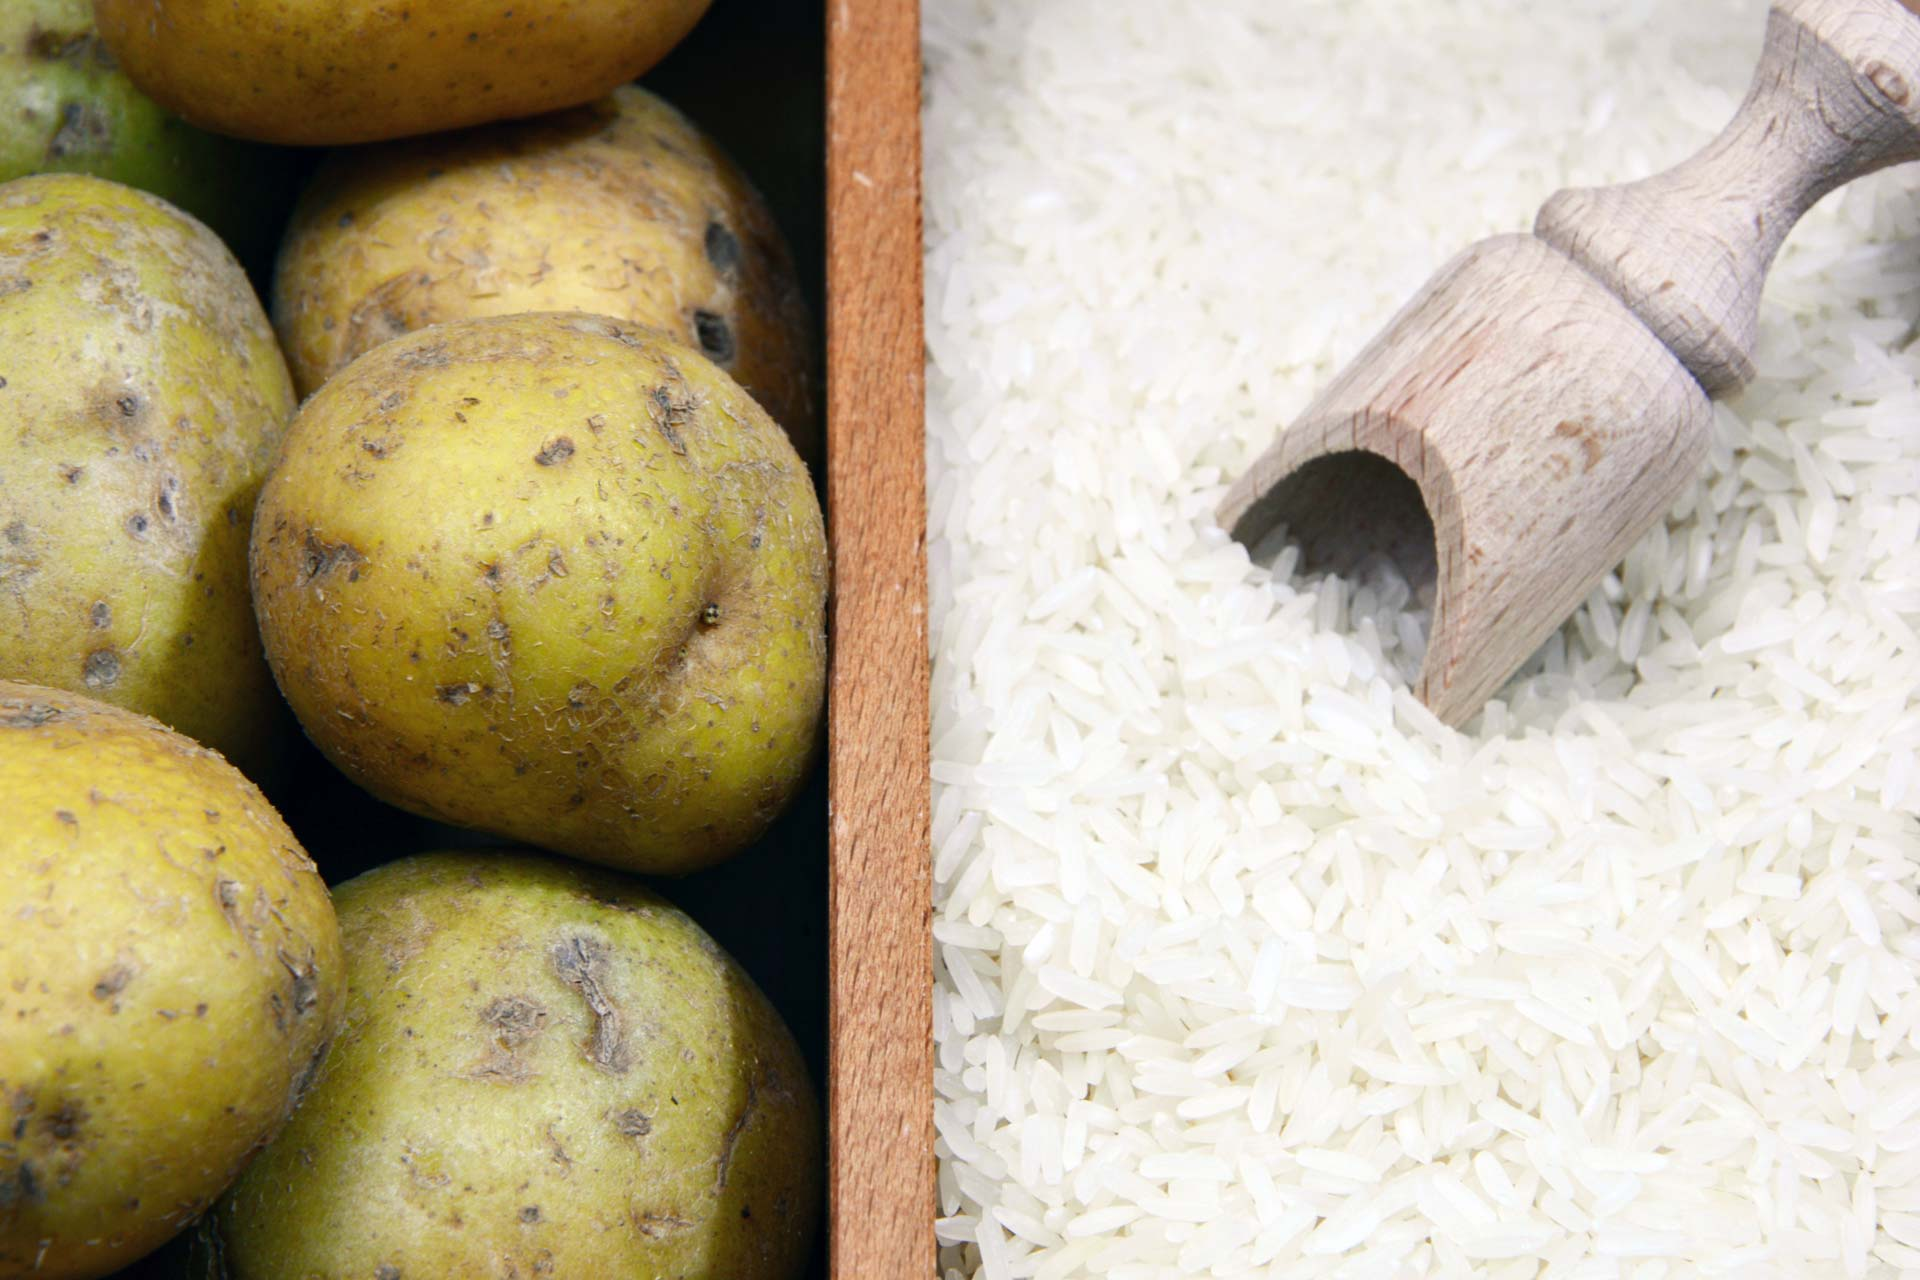 Potatoes and rice, uncooked